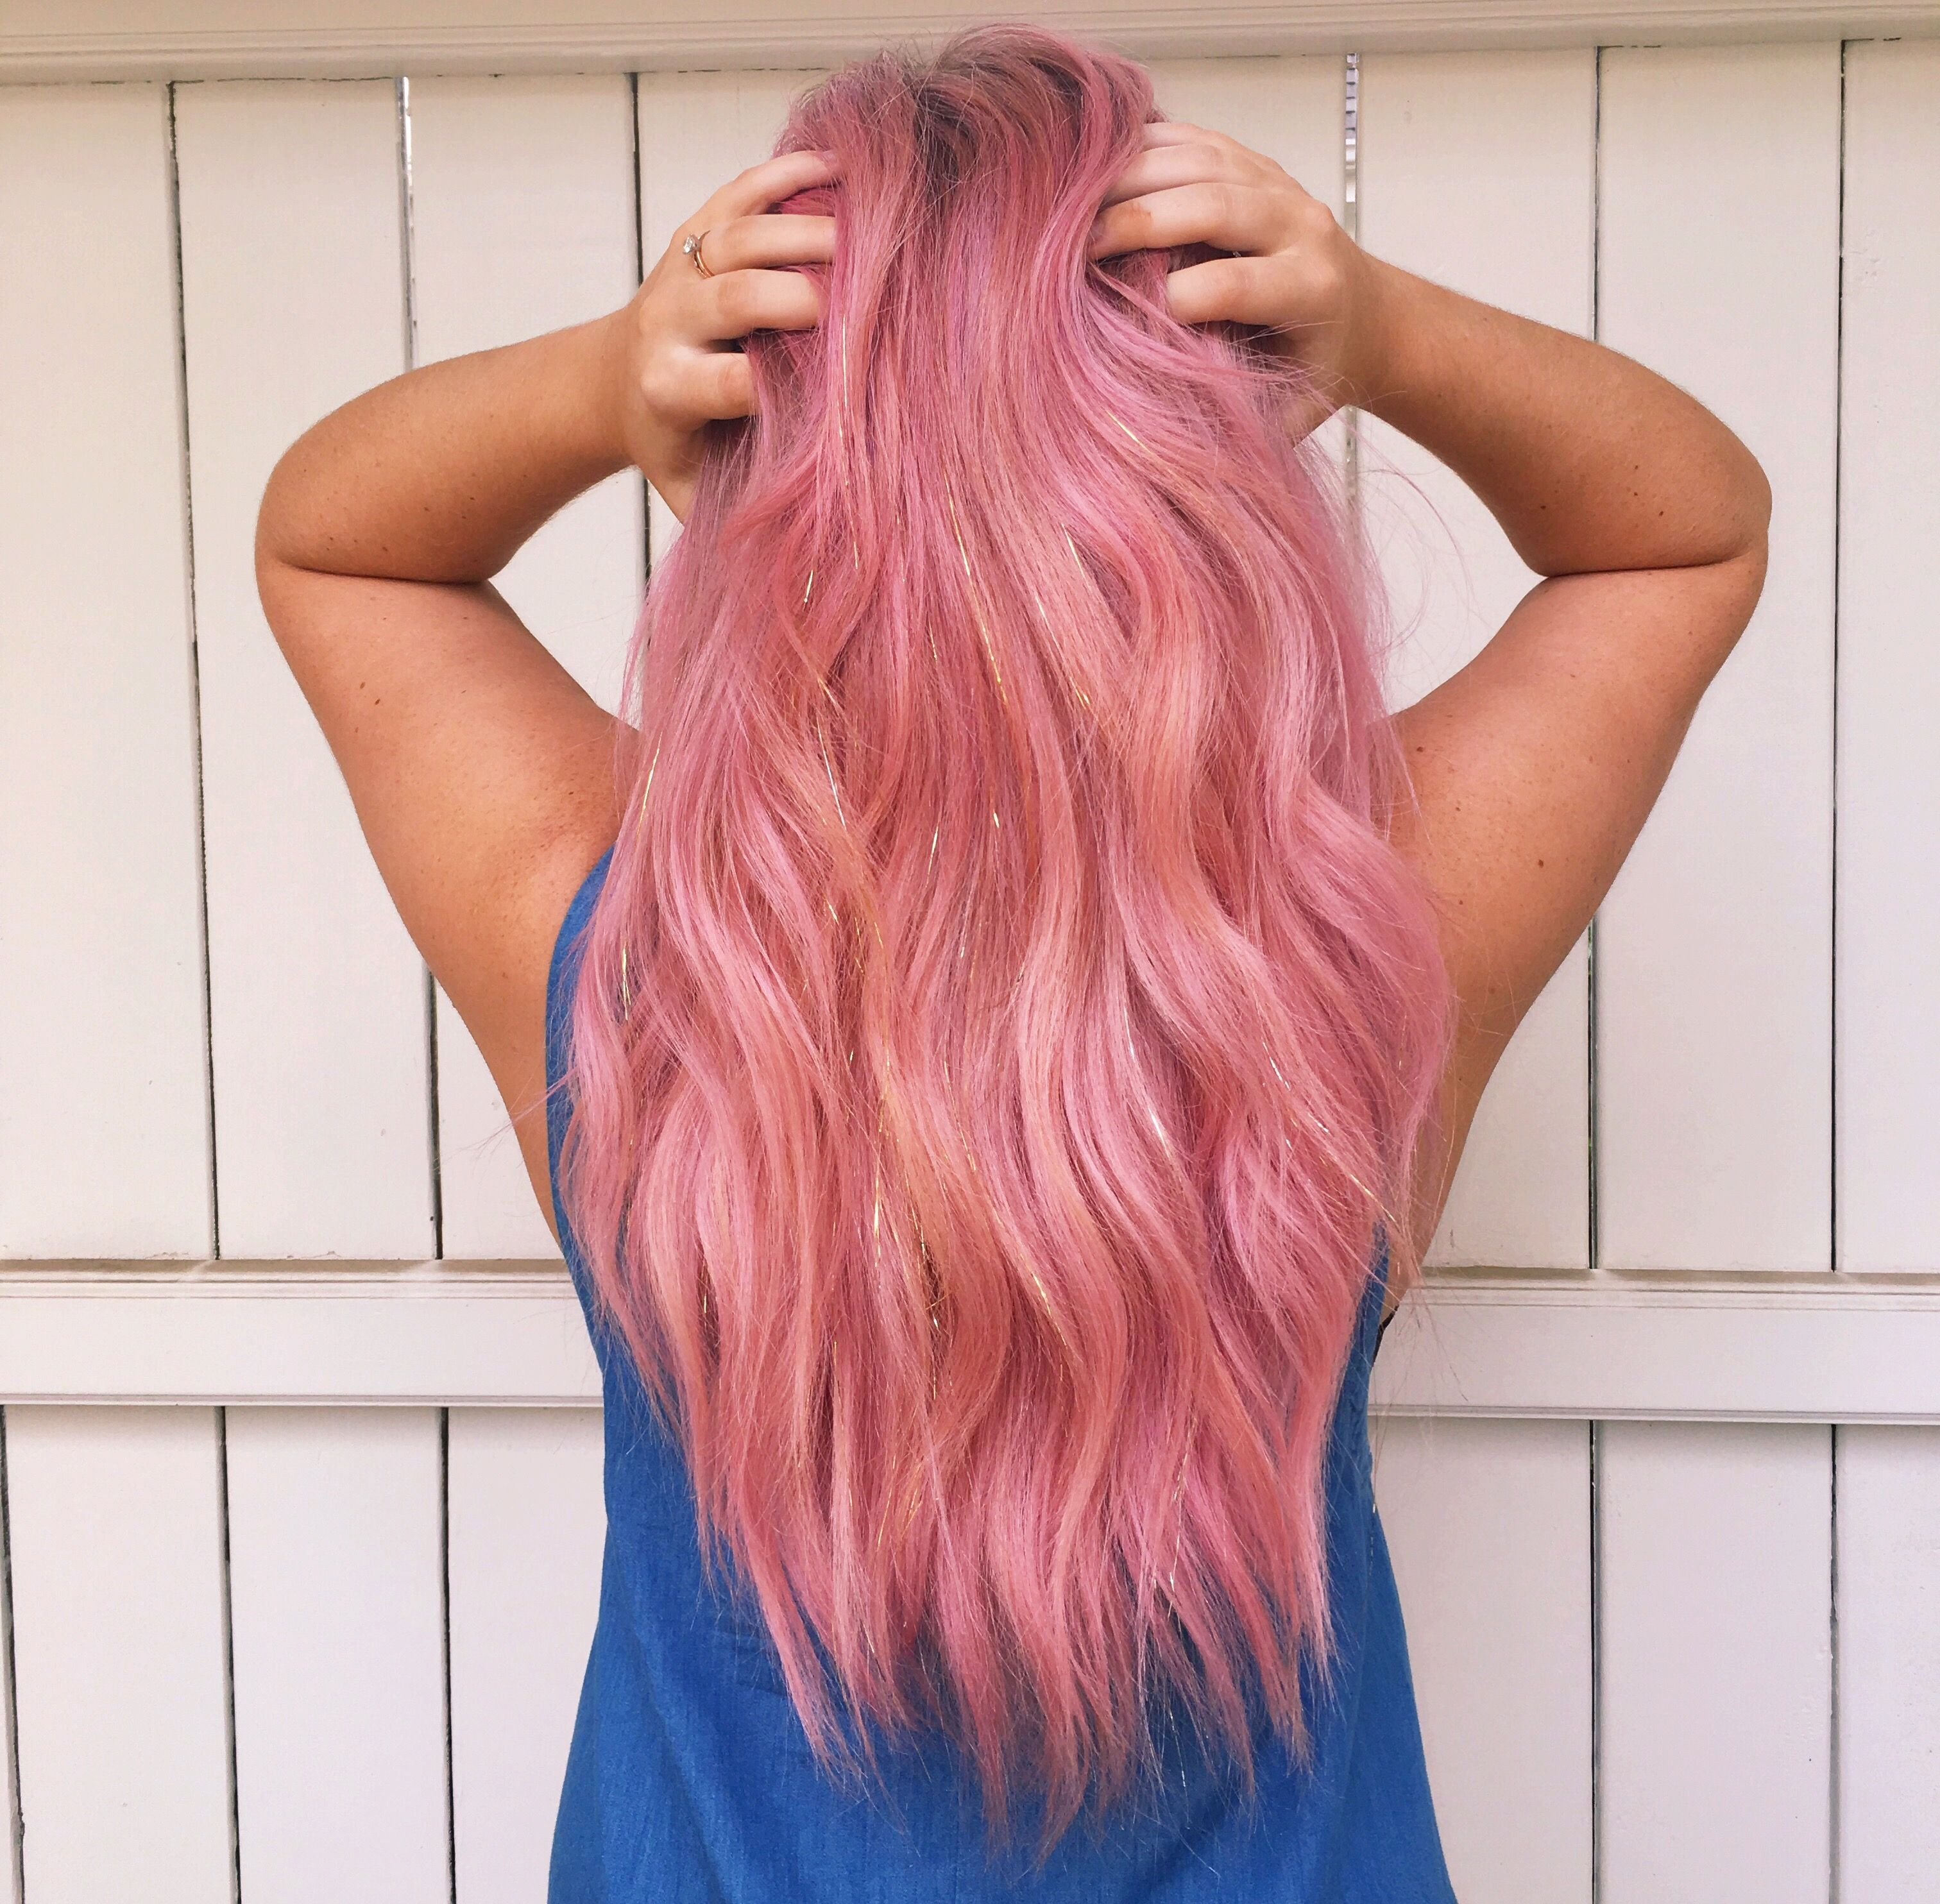 L Oreal Colorista In Pink 200 And Soft Pink 300 Hair Pinkhair